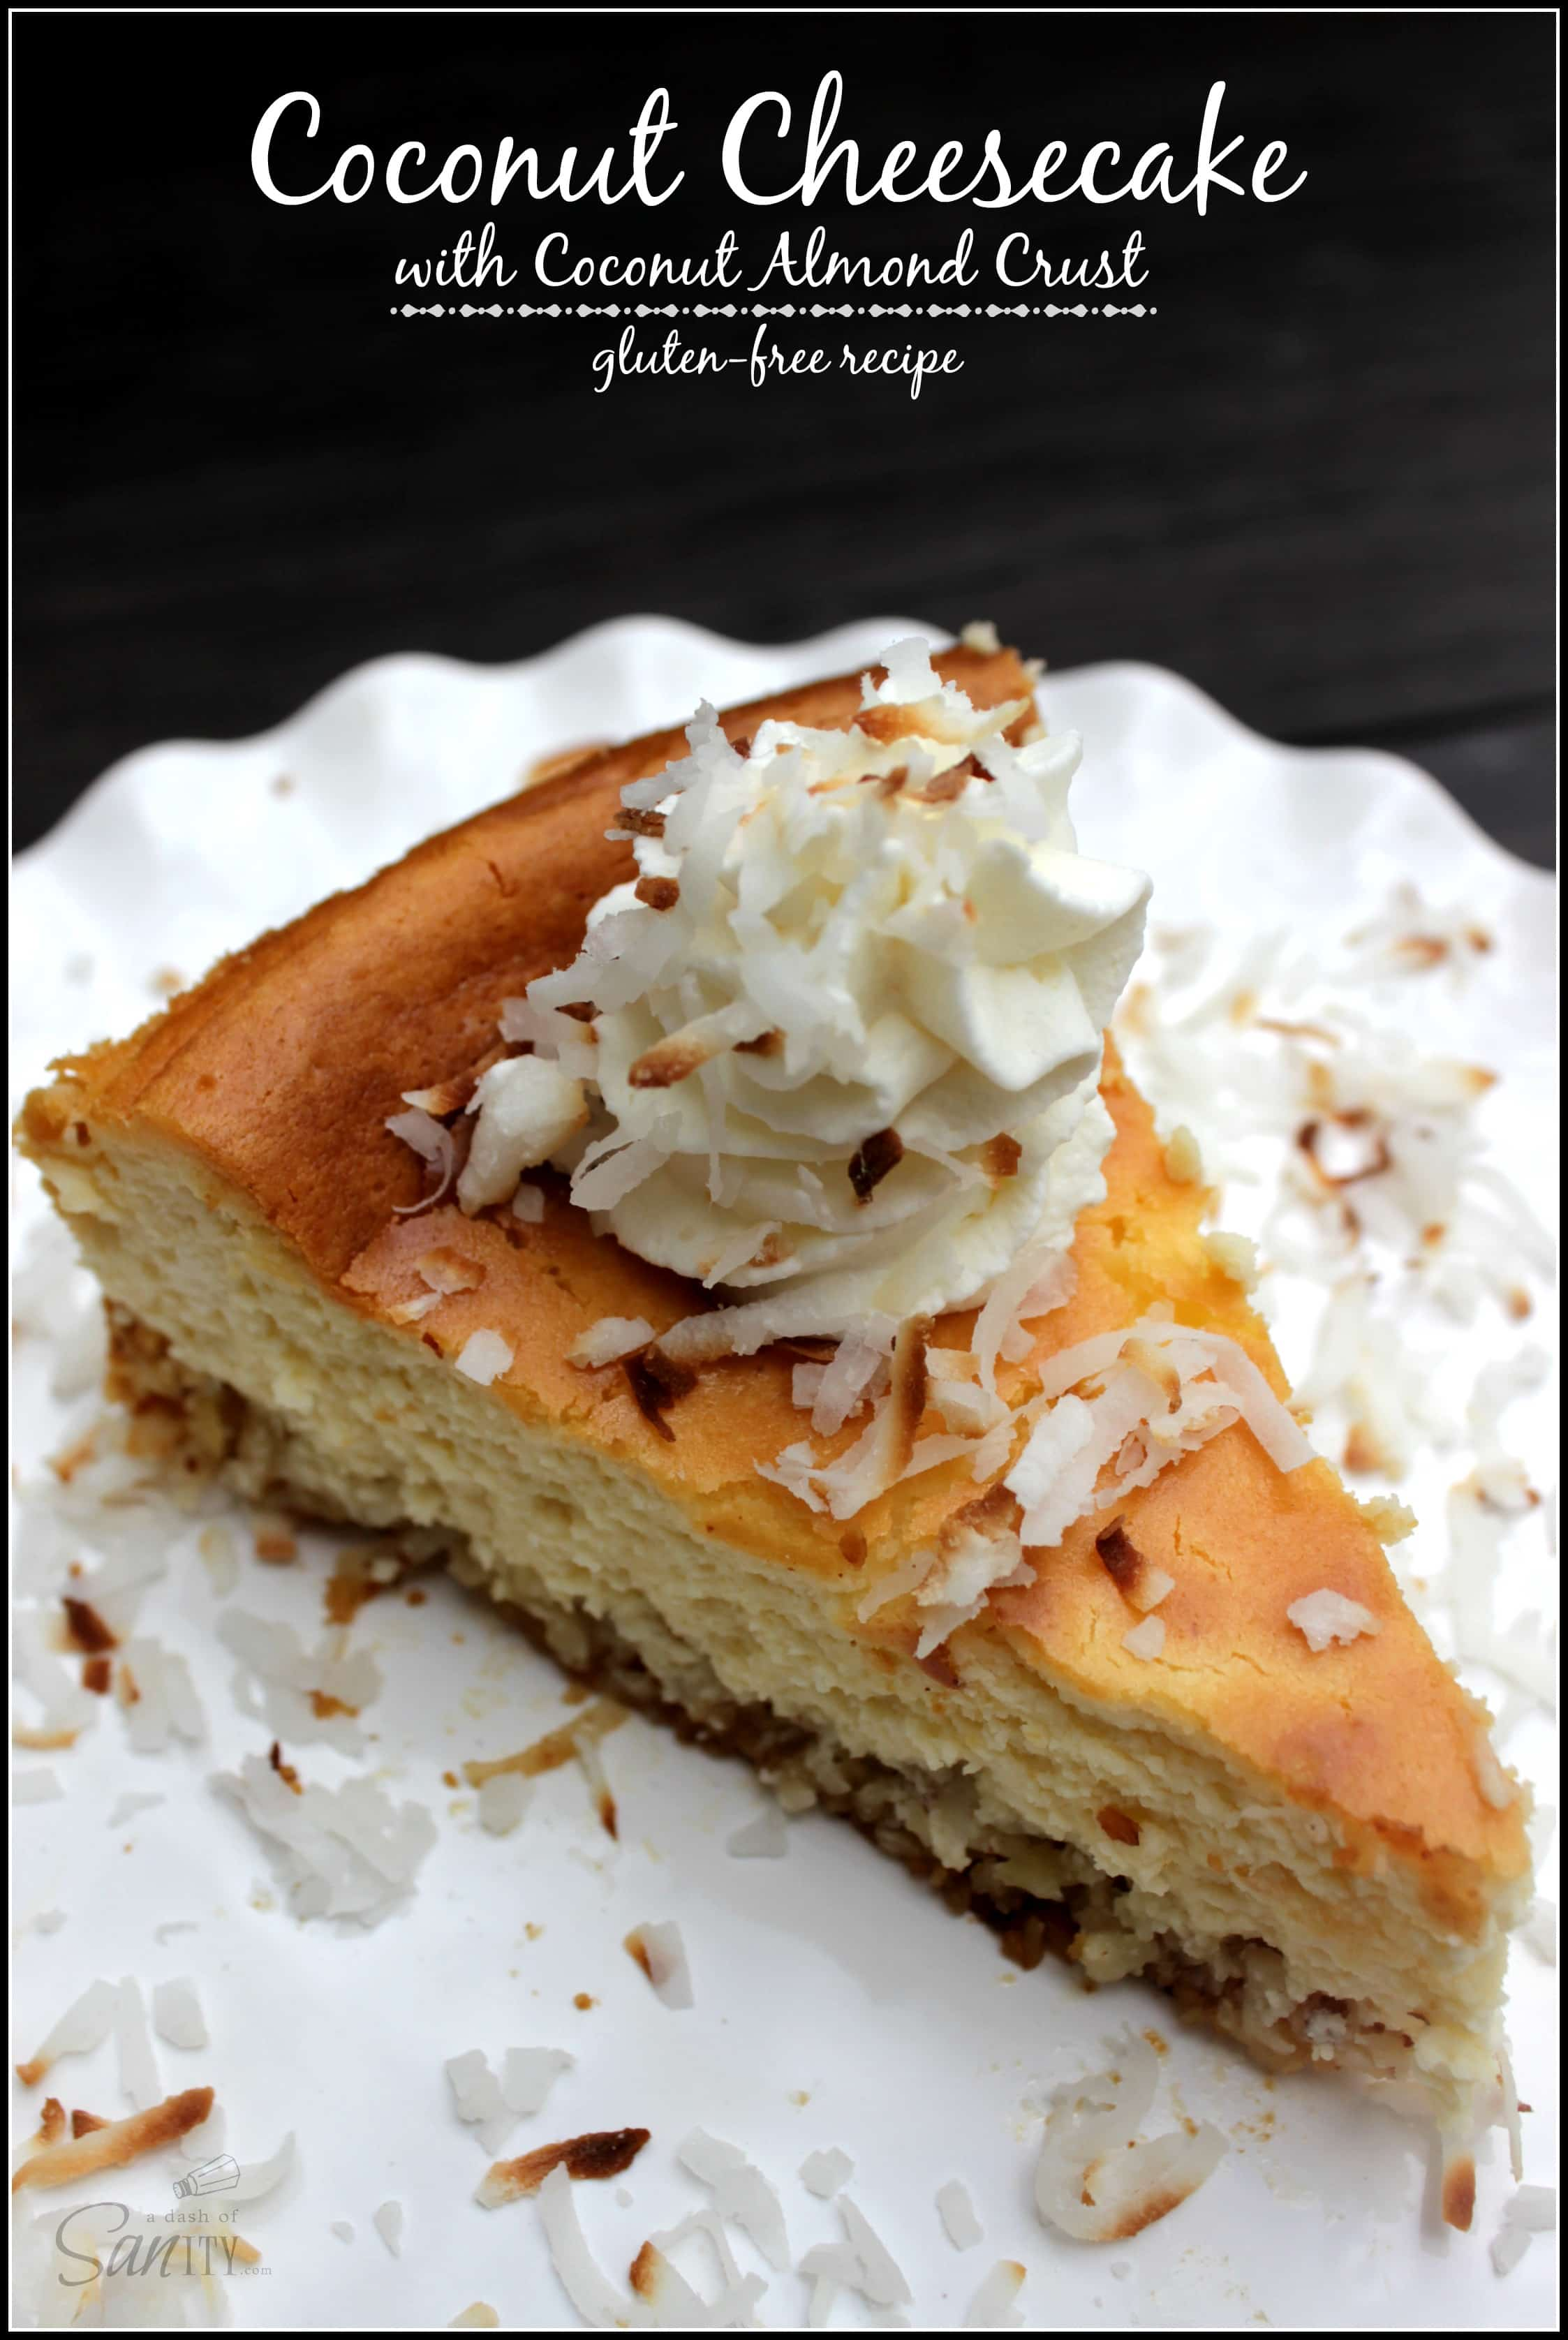 Coconut Cheesecake with Coconut Almond Crust & $550 Amazon Gift Card Giveaway!